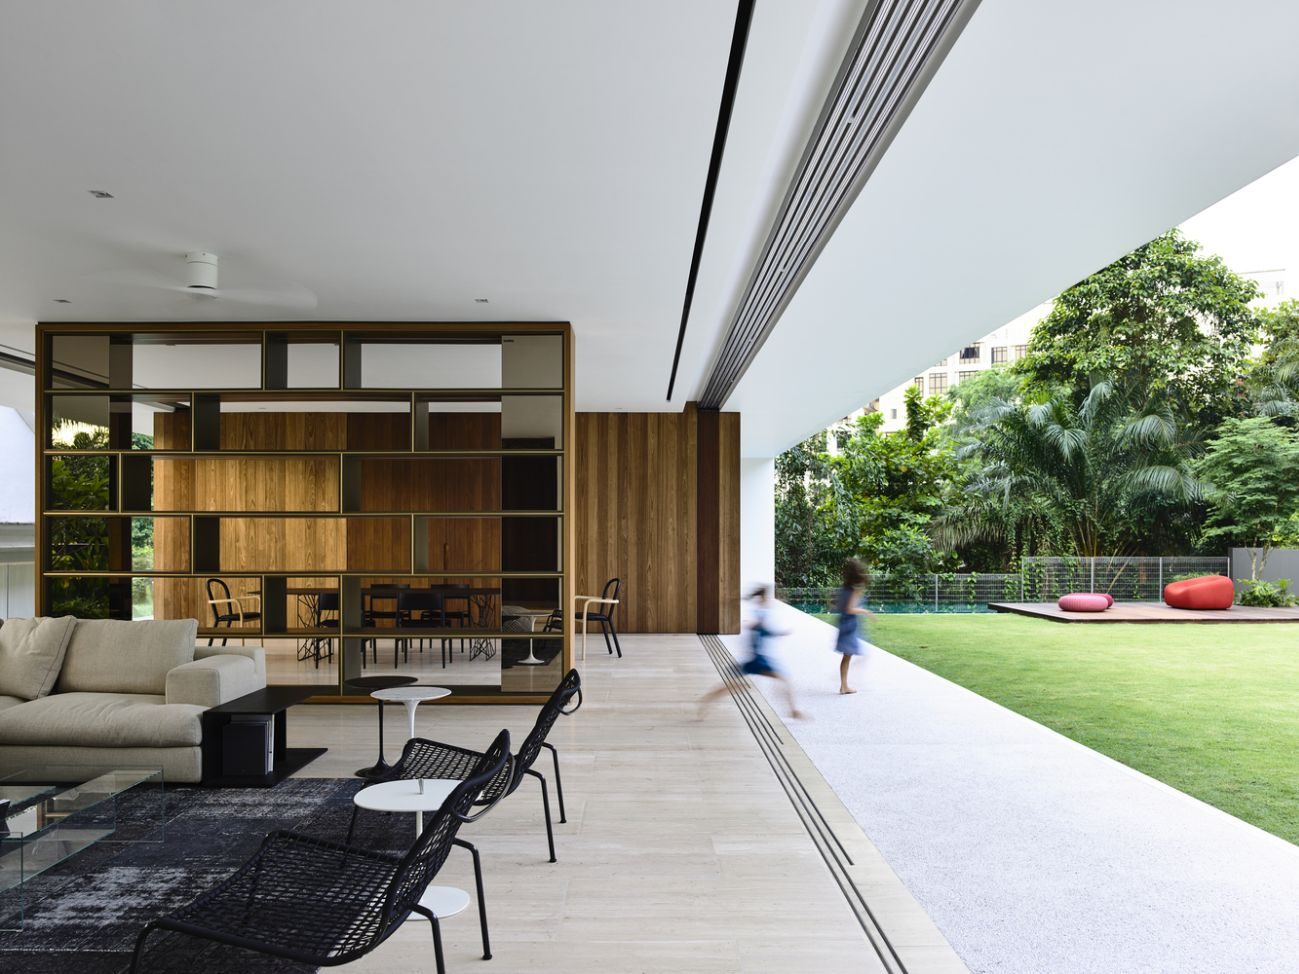 The ground floor living areas have floor-to-ceiling glass doors which are fully retractable